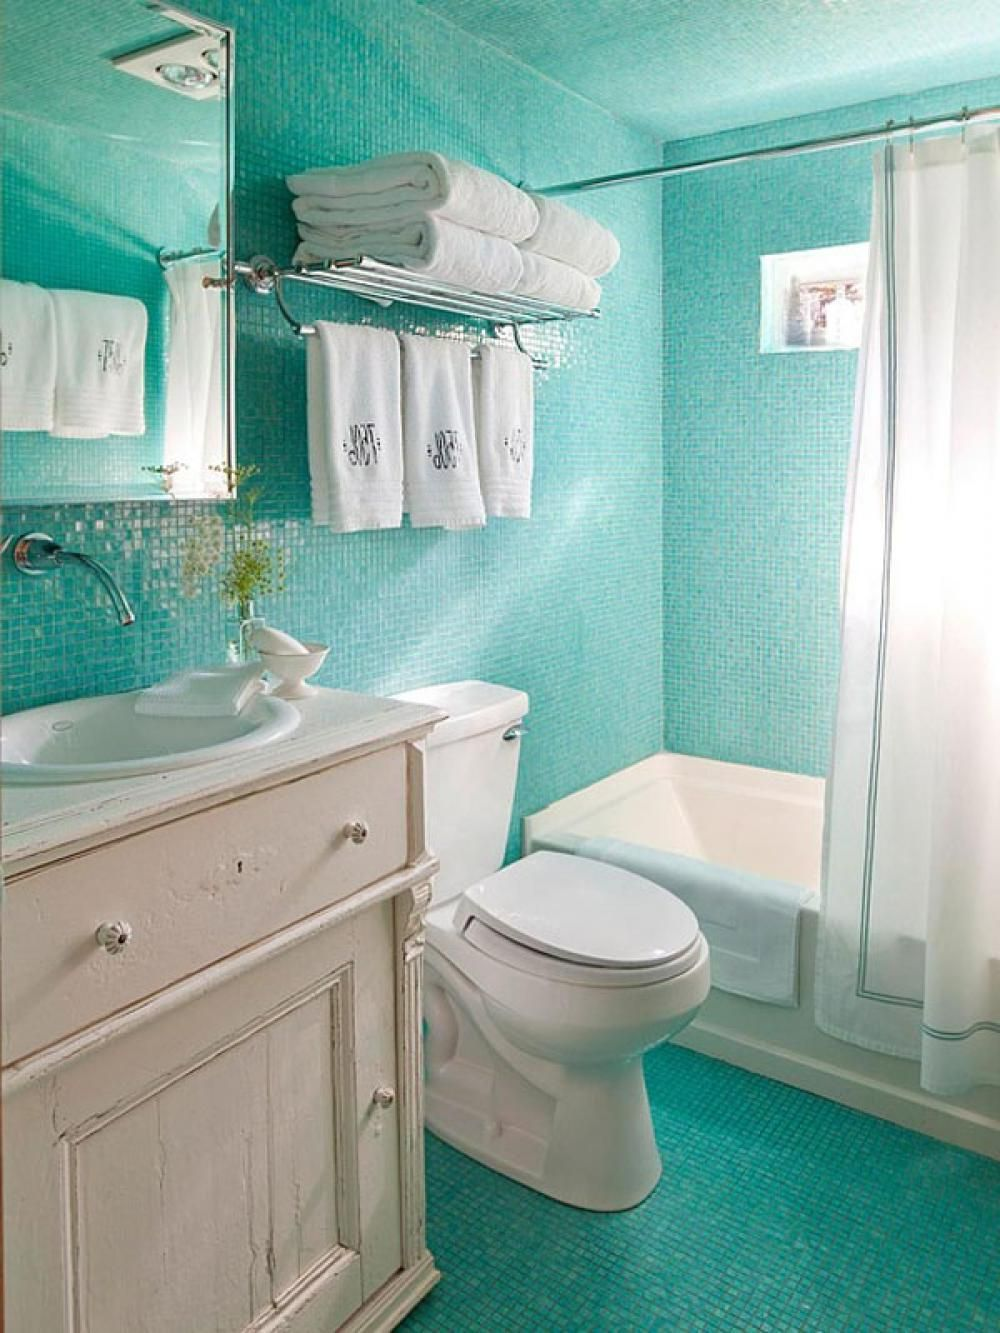 Chic Turquoise Mosaic Tiles Ocean Inspired Bathroom With